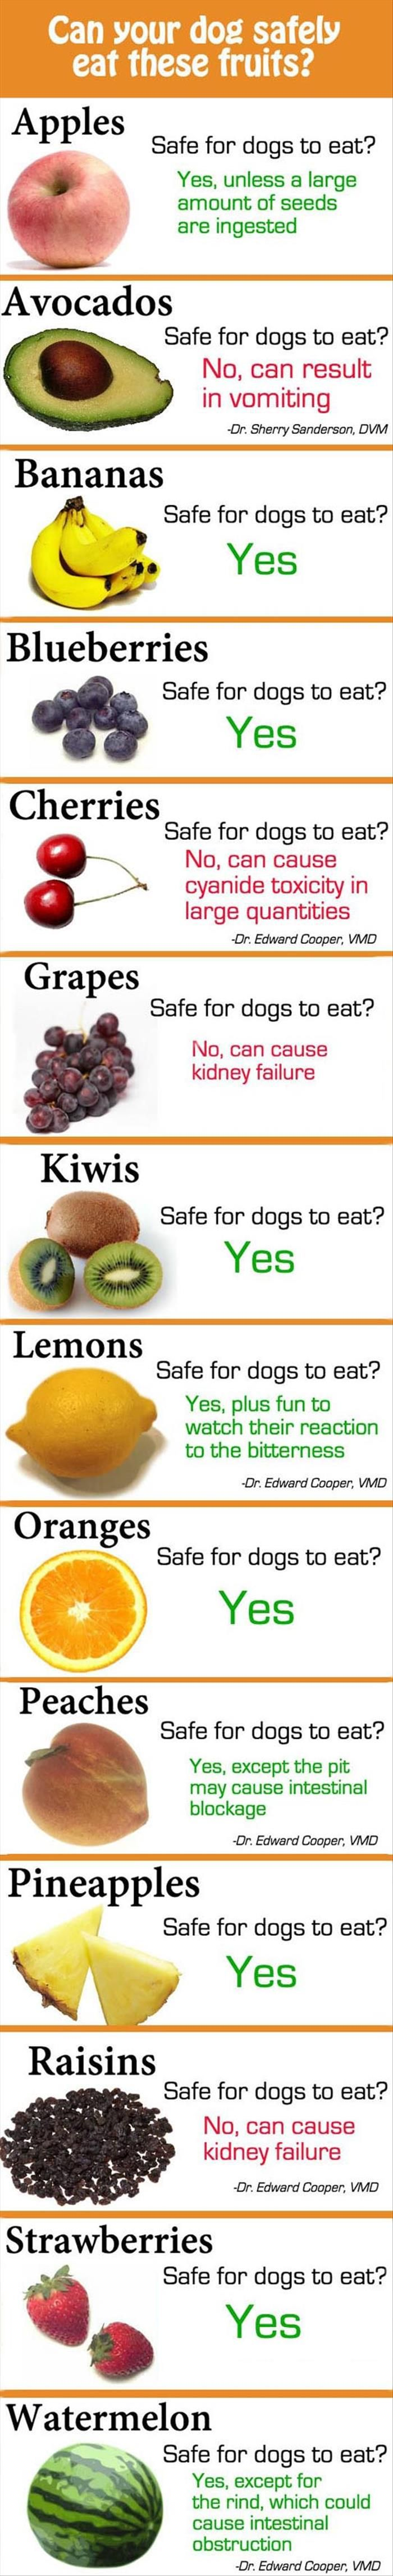 14 Fruits Your Dog Can And Can't Eat Dogs, Dog food